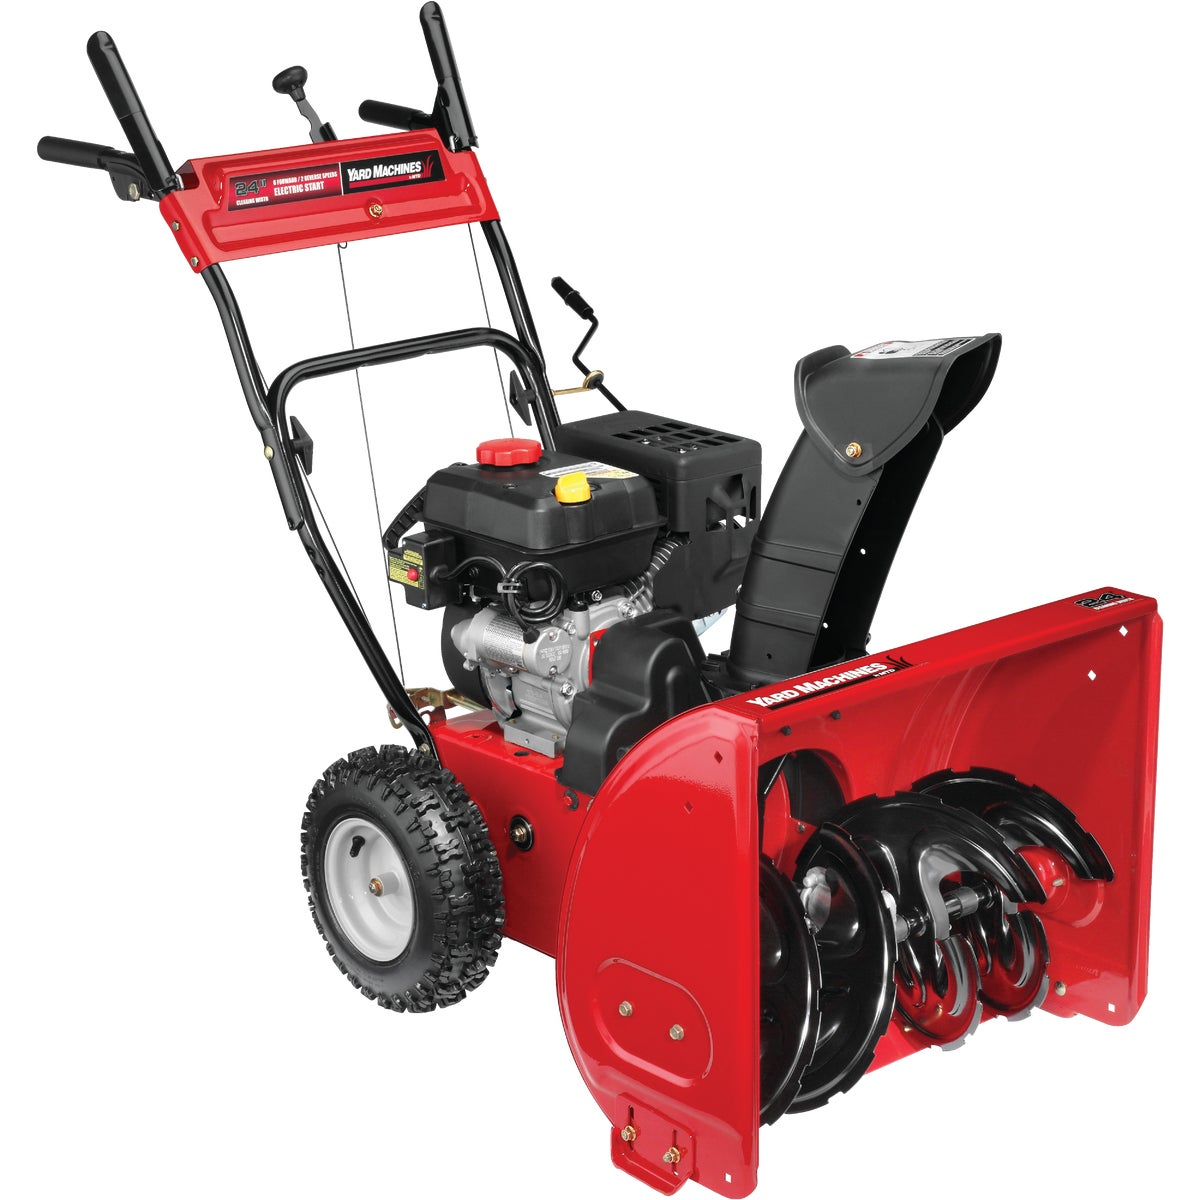 Yard Machine 24 In. 2-Stage Gas Snow Blower, 31AS63EE700